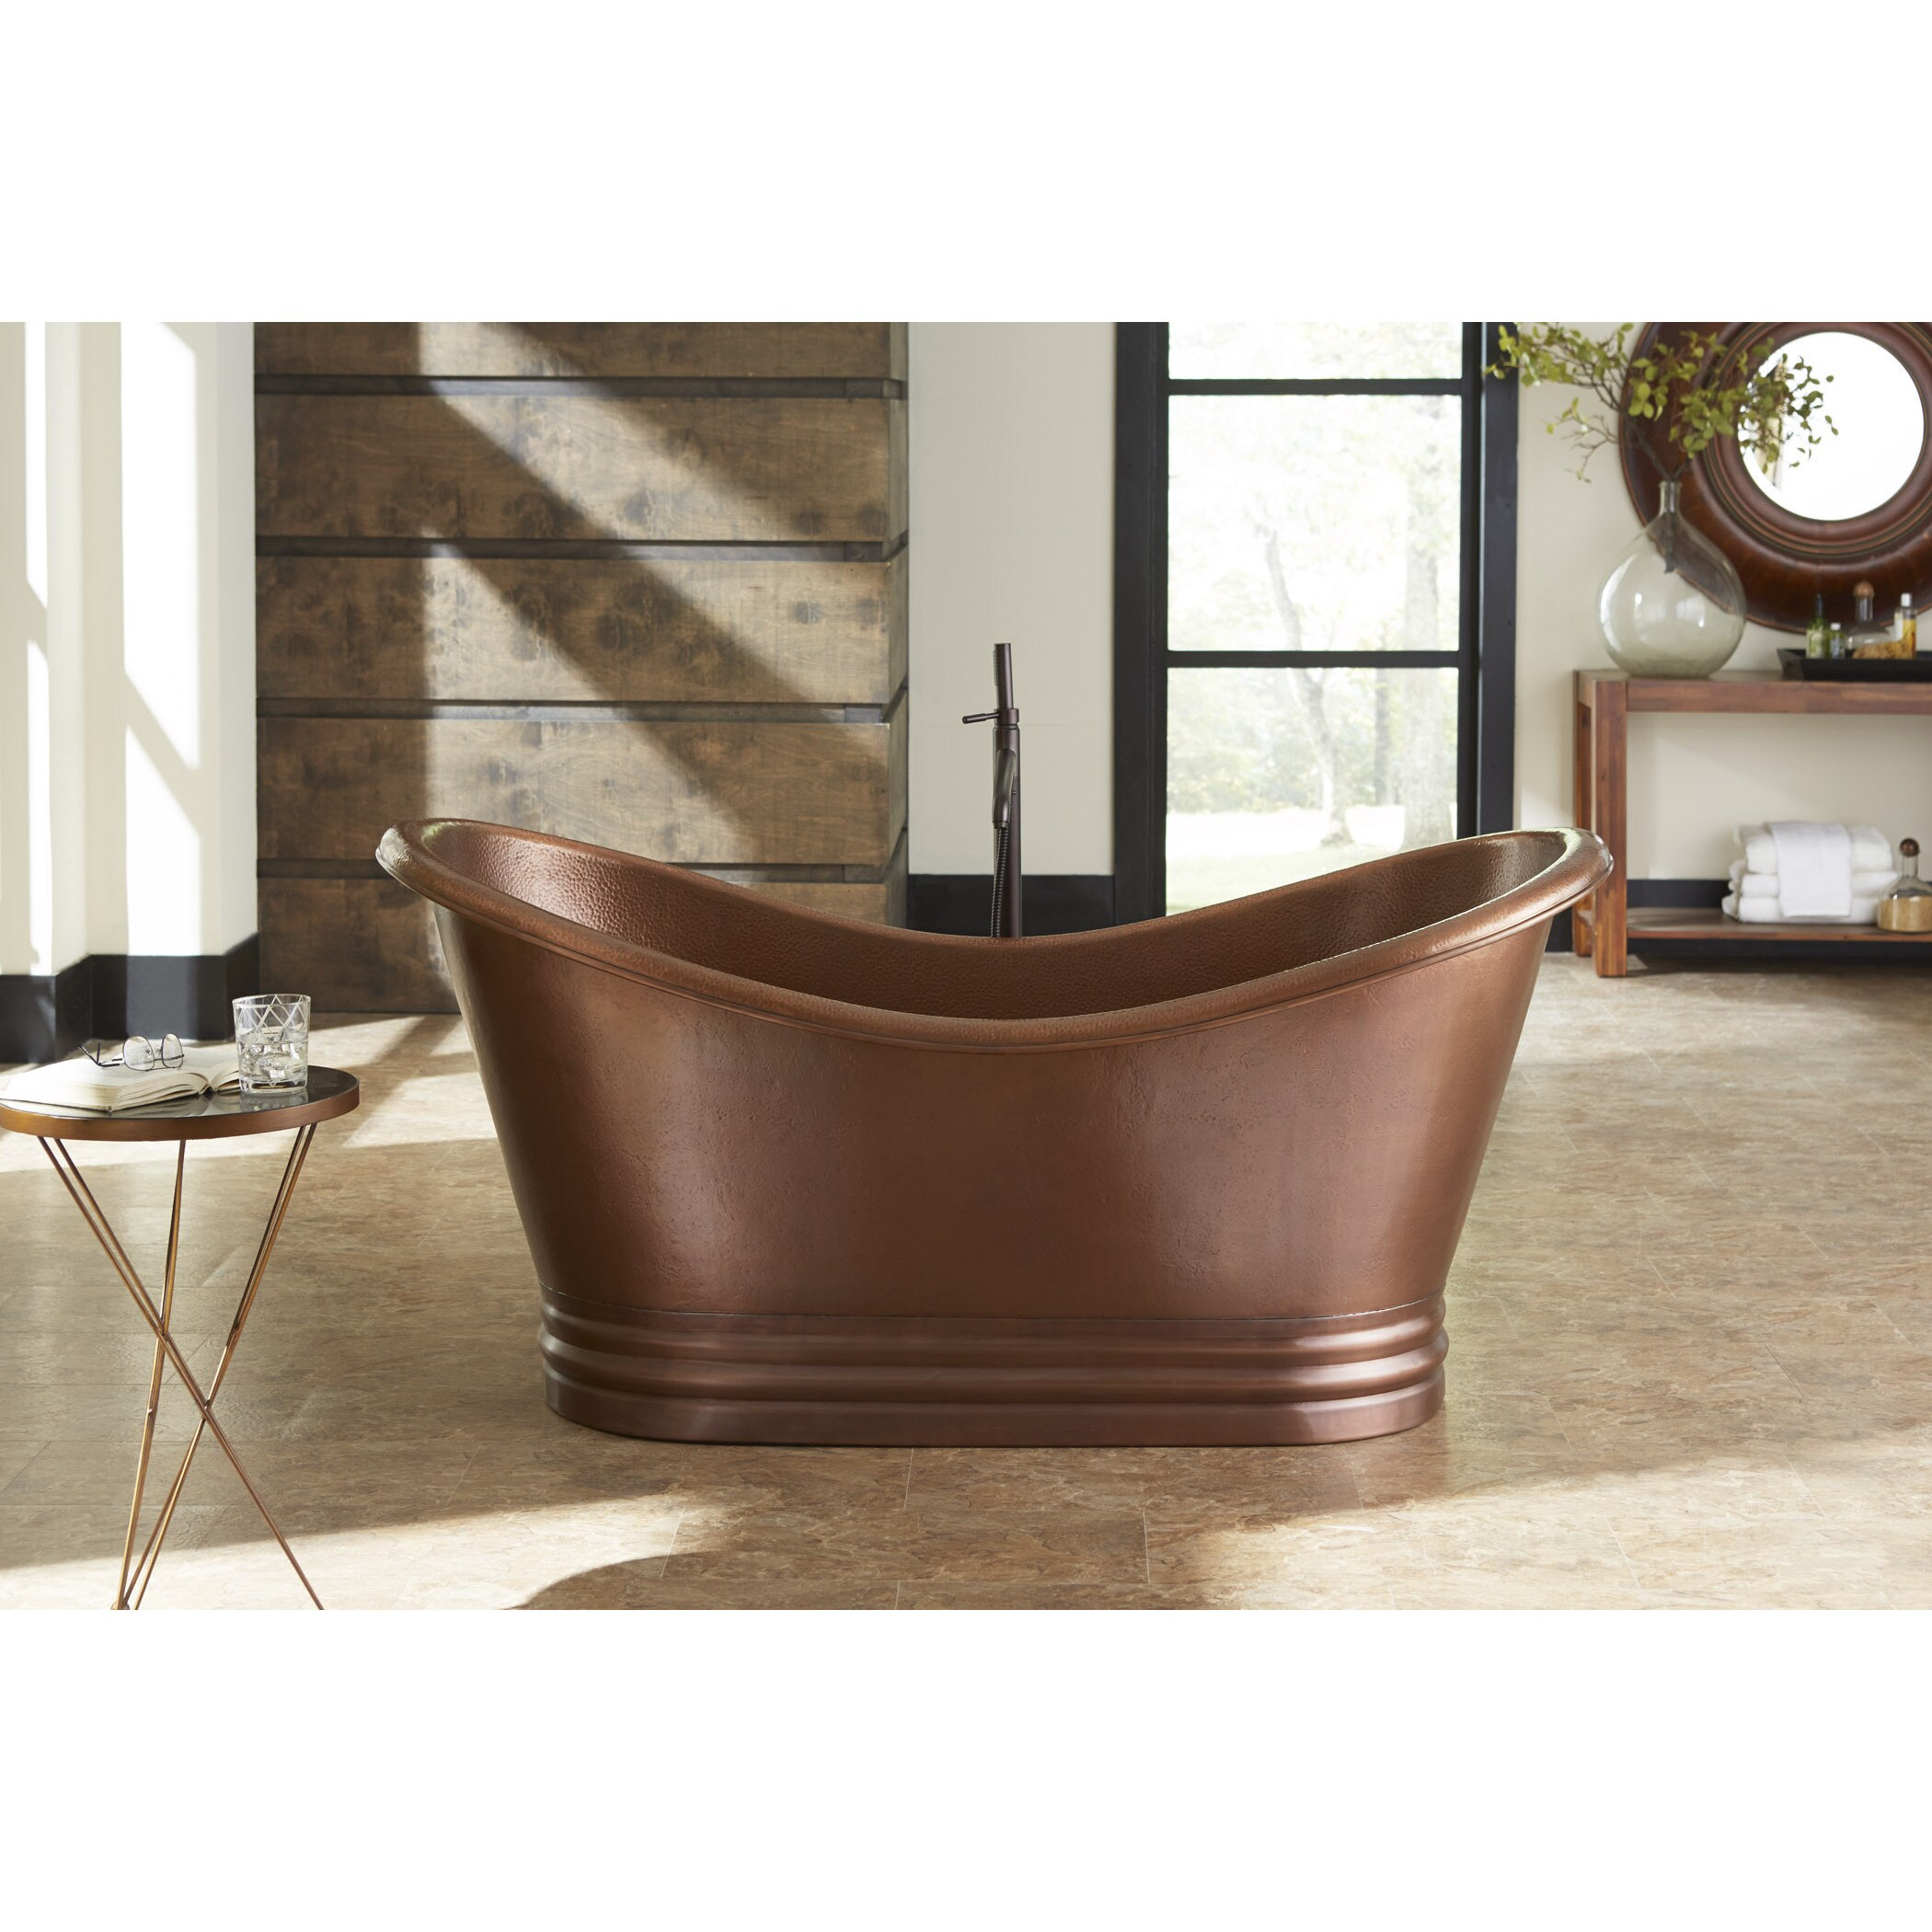 Sinkology Euclid Freestanding Bathtub 6 Foot Handmade Antique Copper Bathtub  W/Overflow